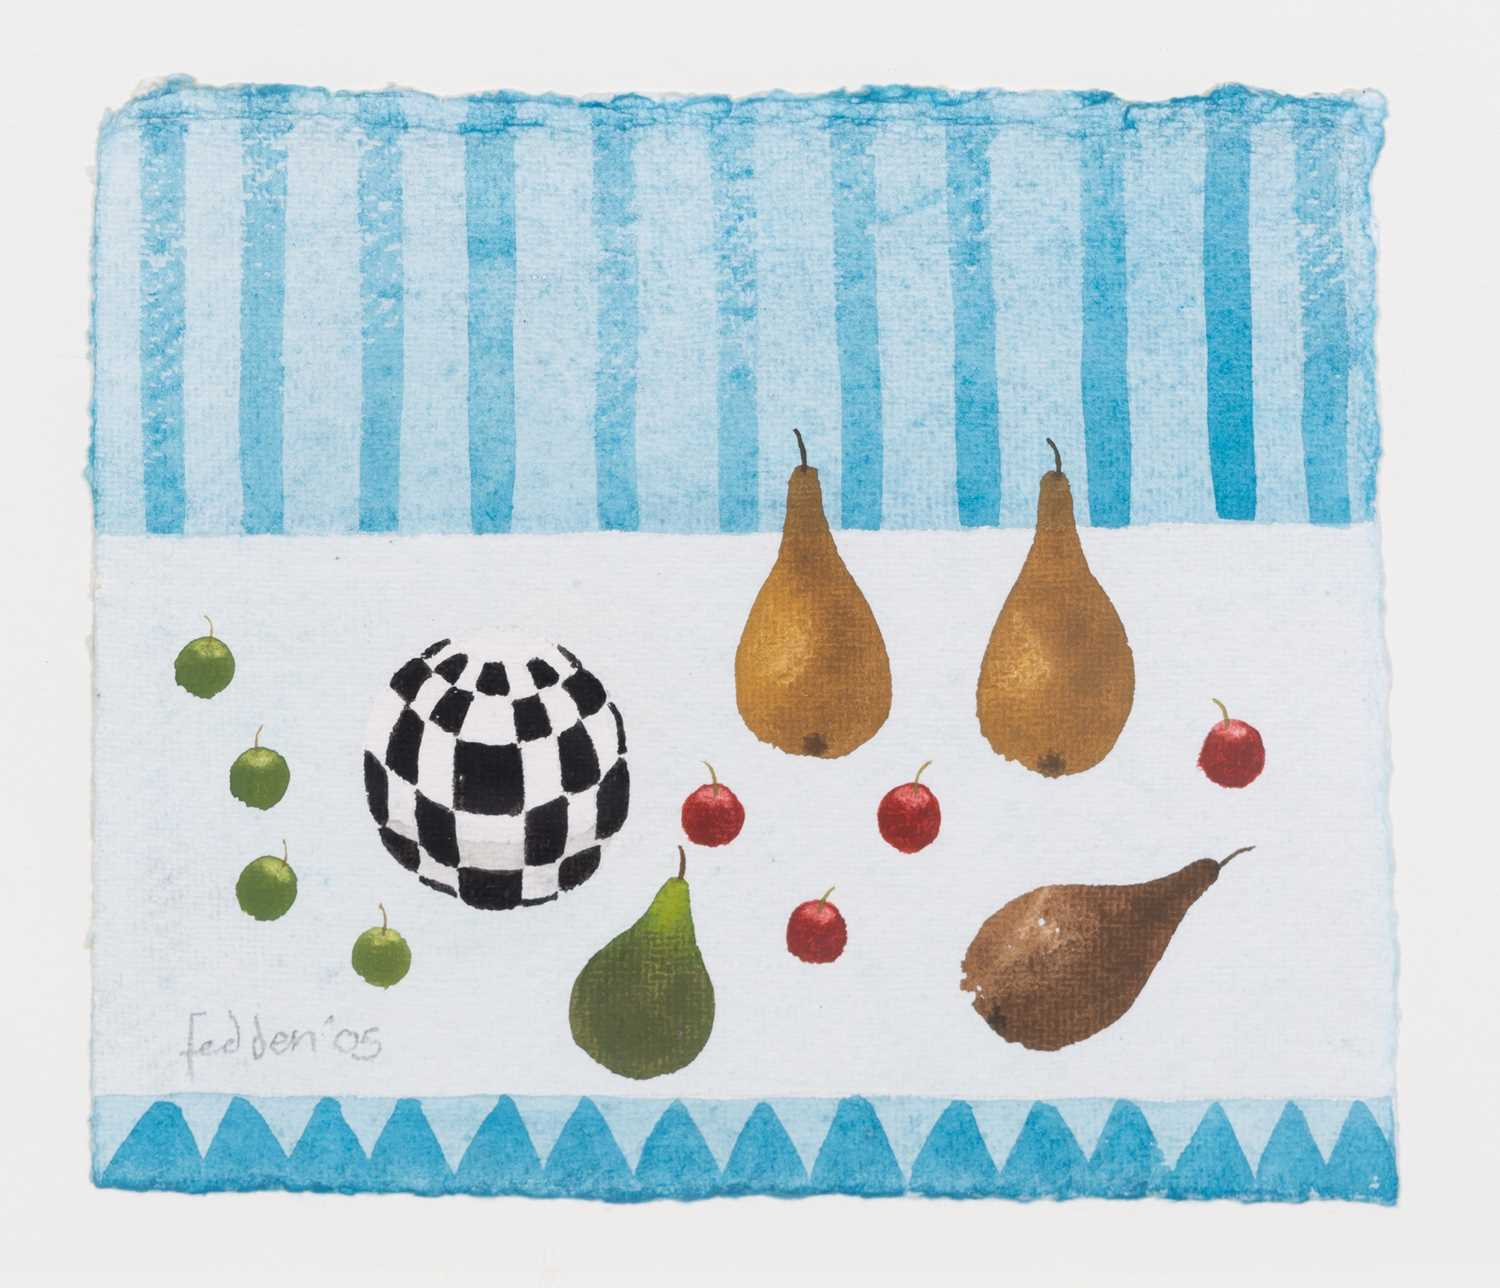 Lot 392 - Mary Fedden - Still life with pears, cherries and a ball, 2005.